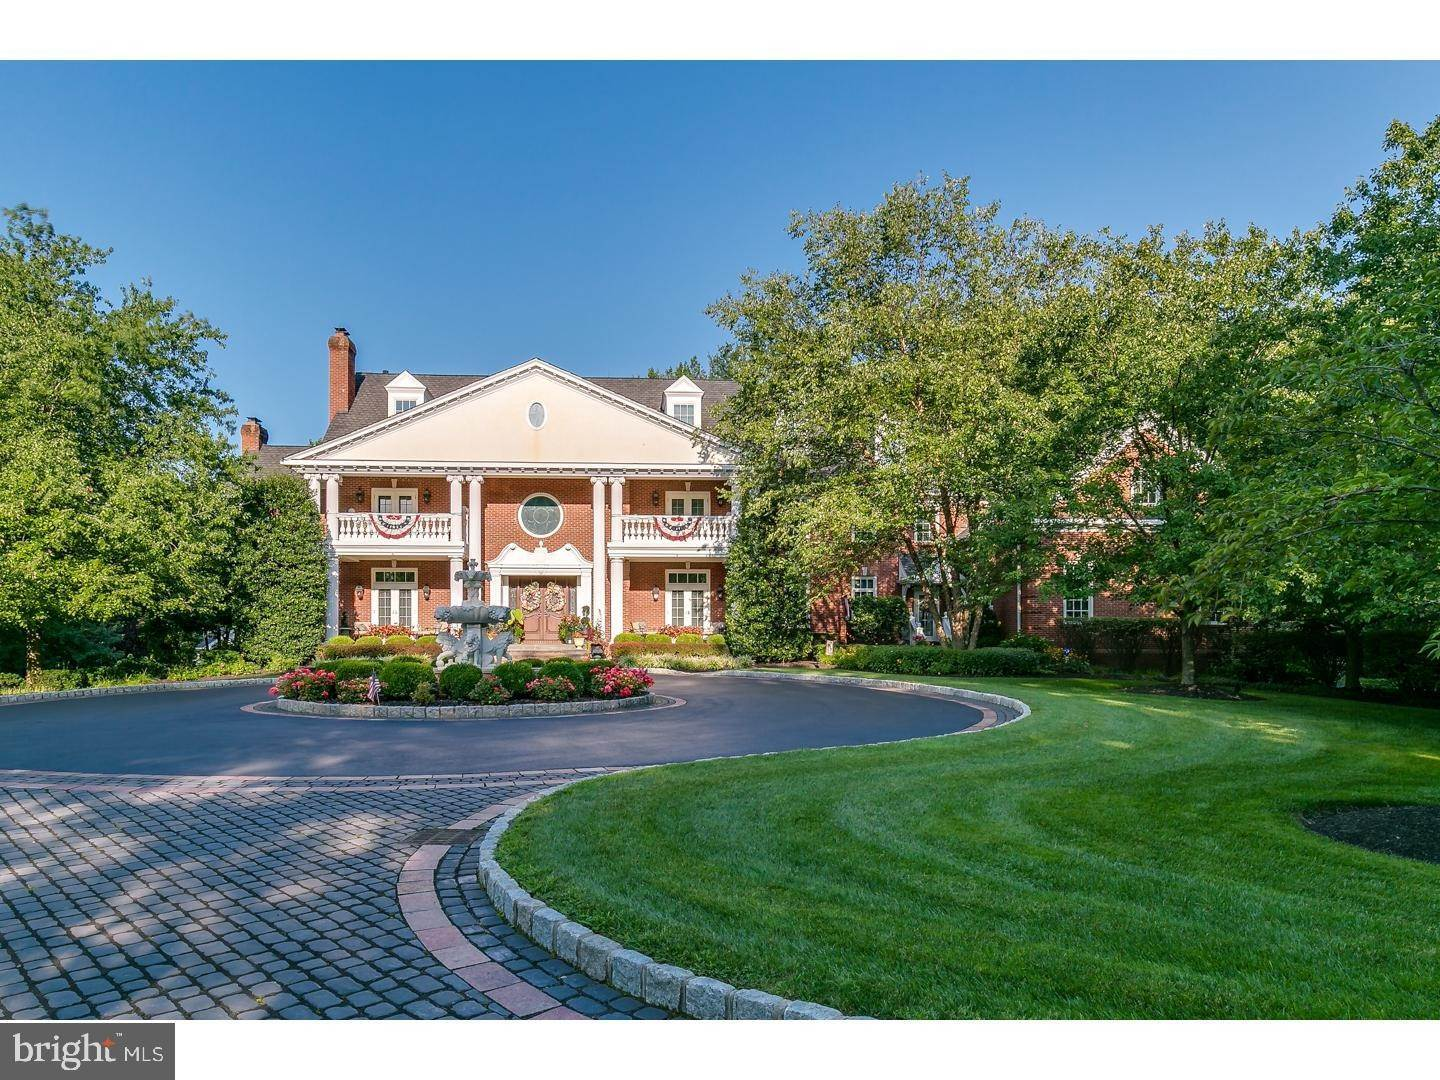 Detached House for Sale at 511 NEW ALBANY Road Moorestown, New Jersey 08057 United States